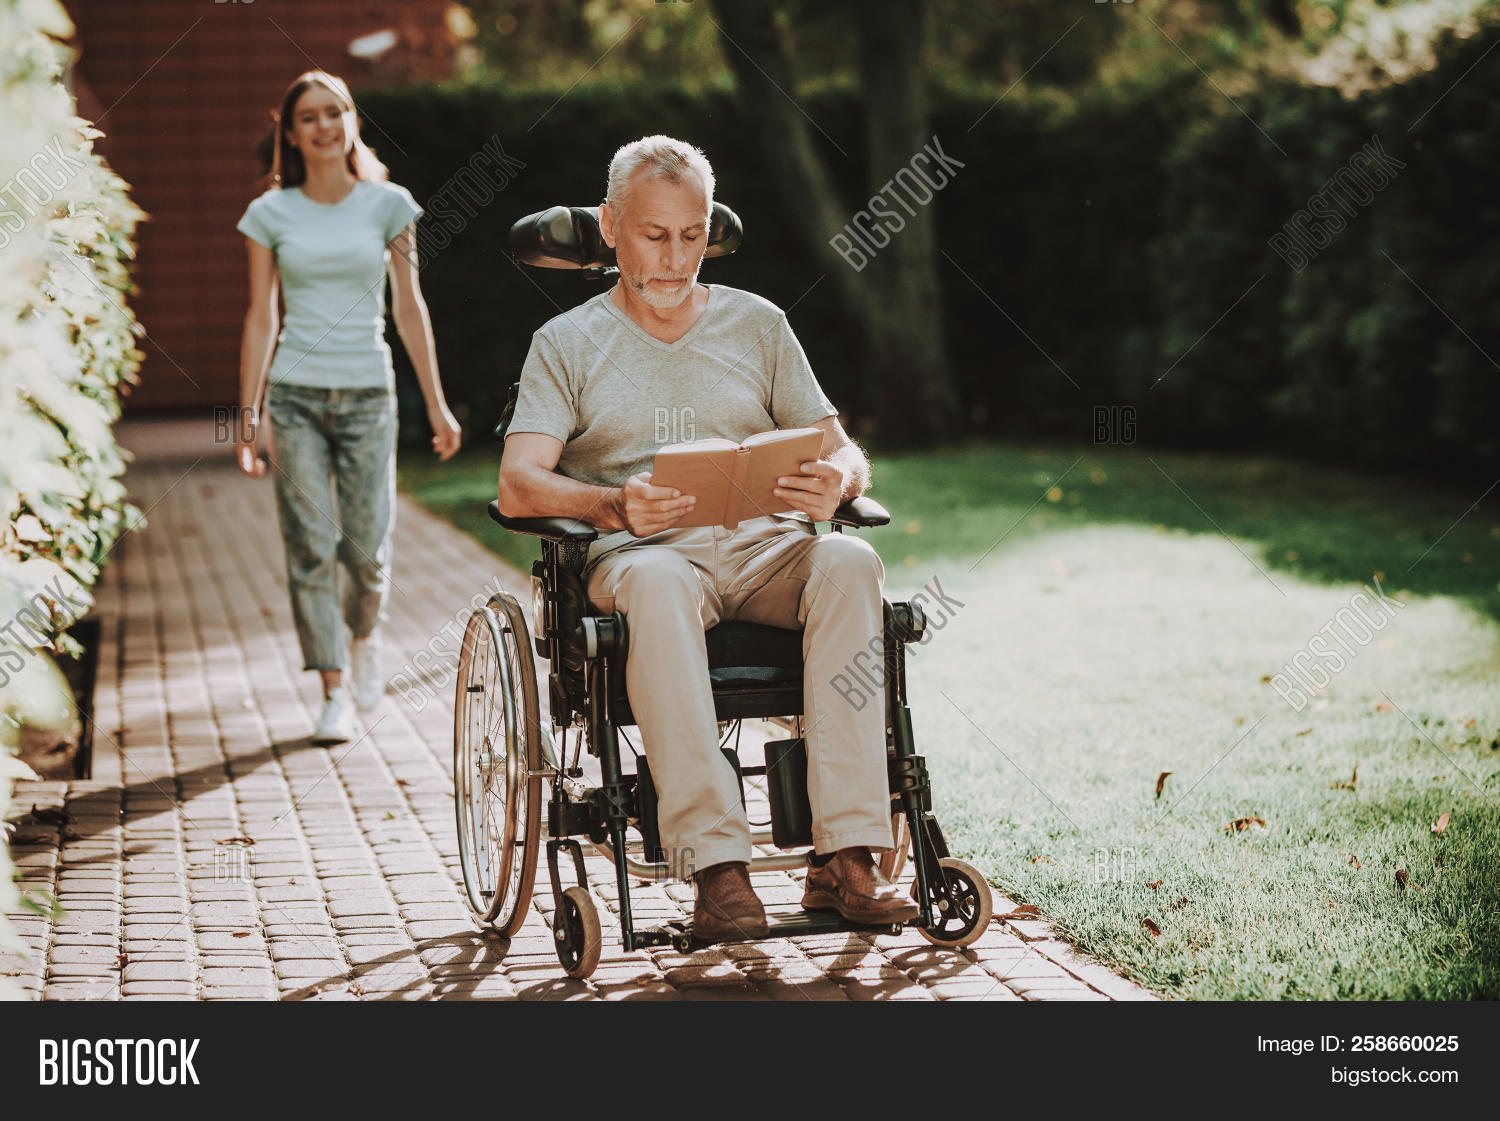 Rehabilitation Old Man Image Photo Free Trial Bigstock